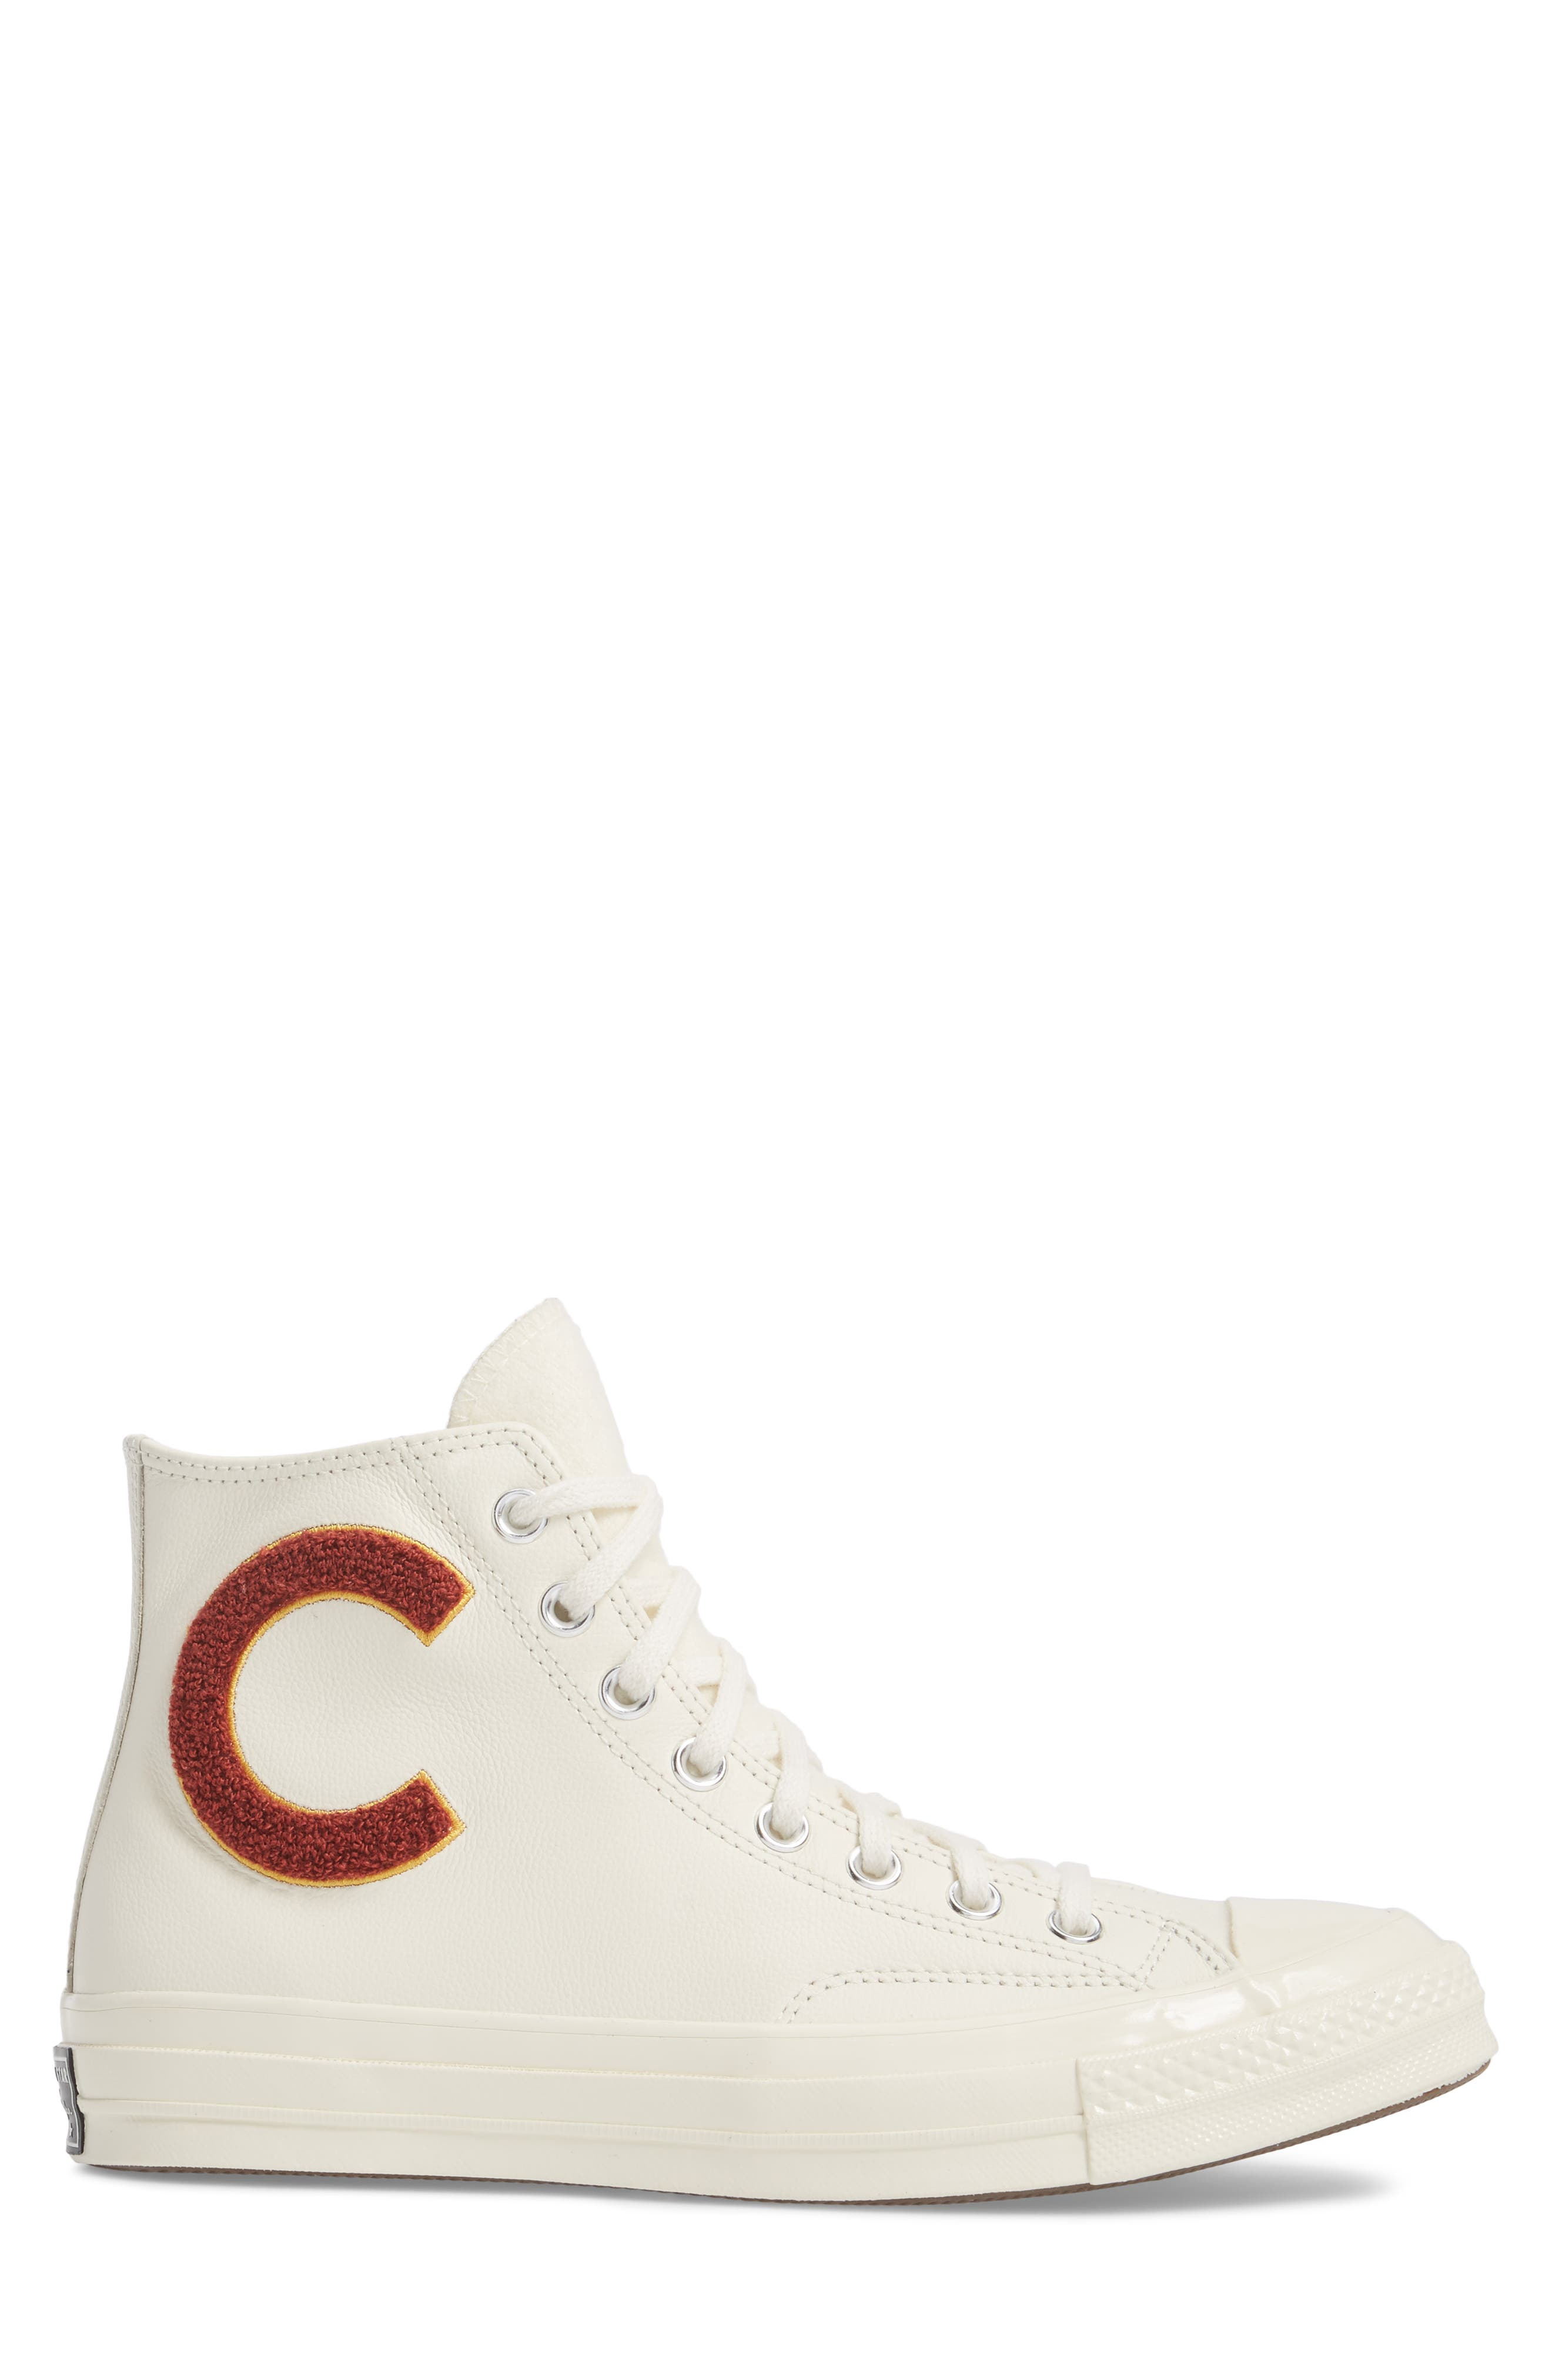 CONVERSE,                             Chuck Taylor<sup>®</sup> All Star<sup>®</sup> Wordmark High Top Sneaker,                             Alternate thumbnail 3, color,                             281